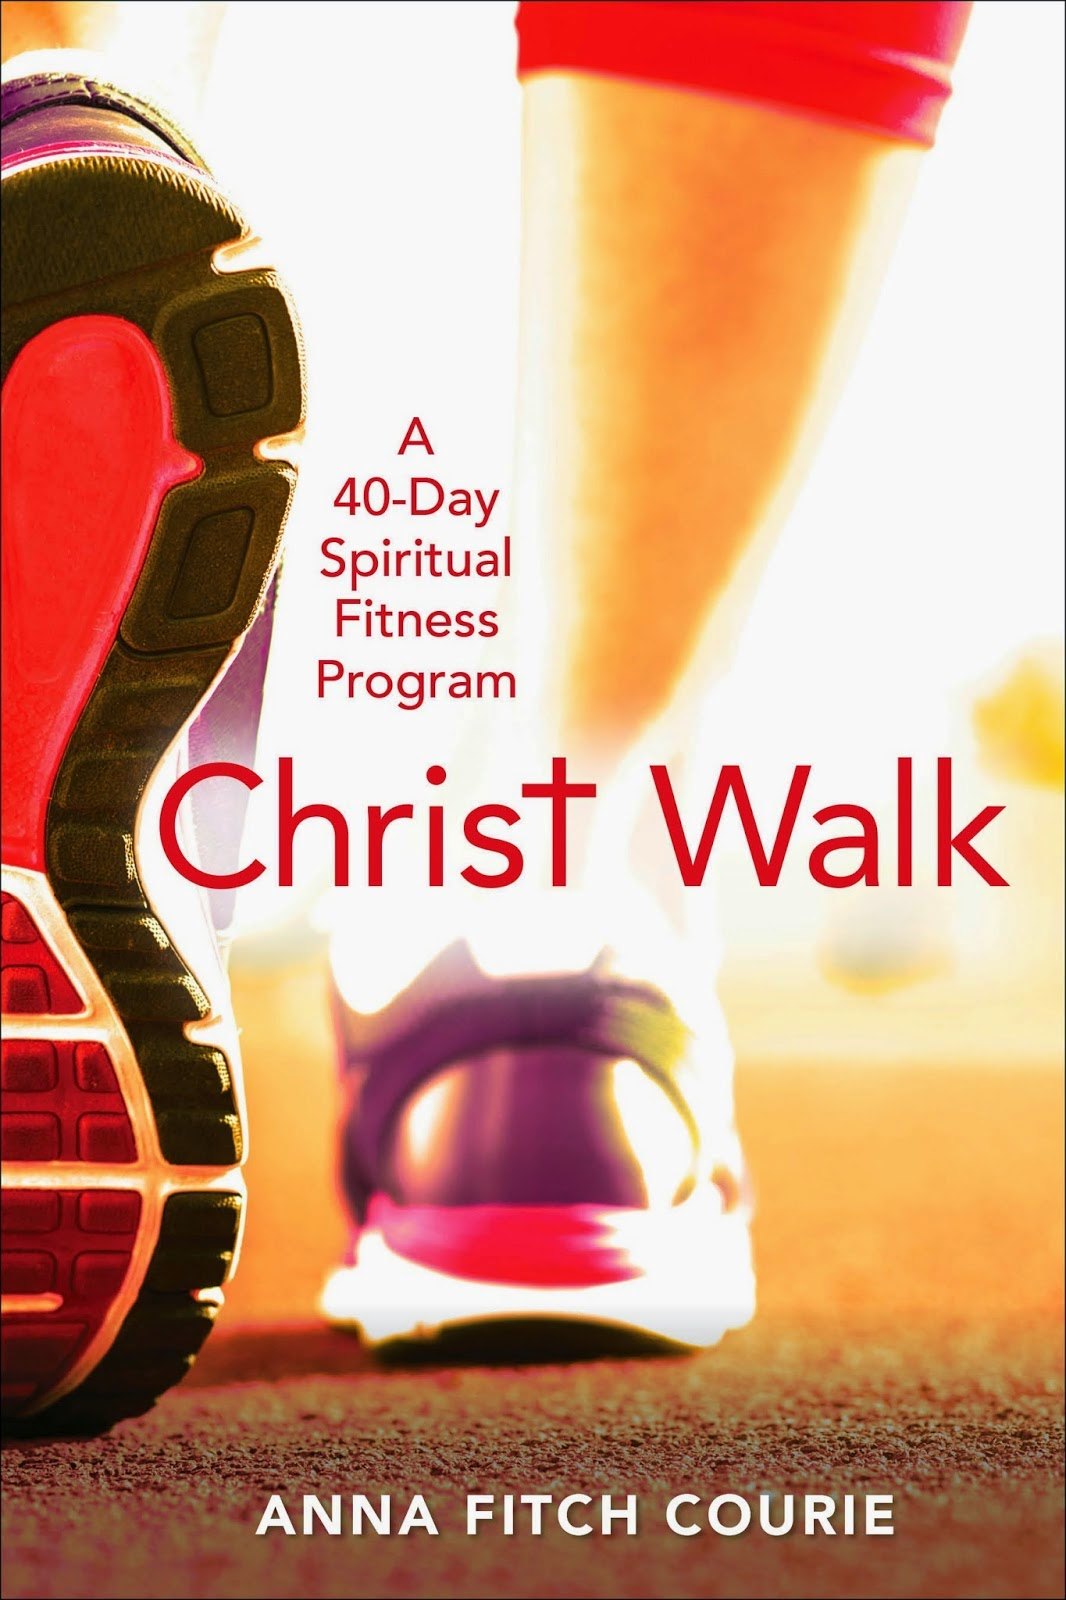 Buy The Christ Walk Program Here!